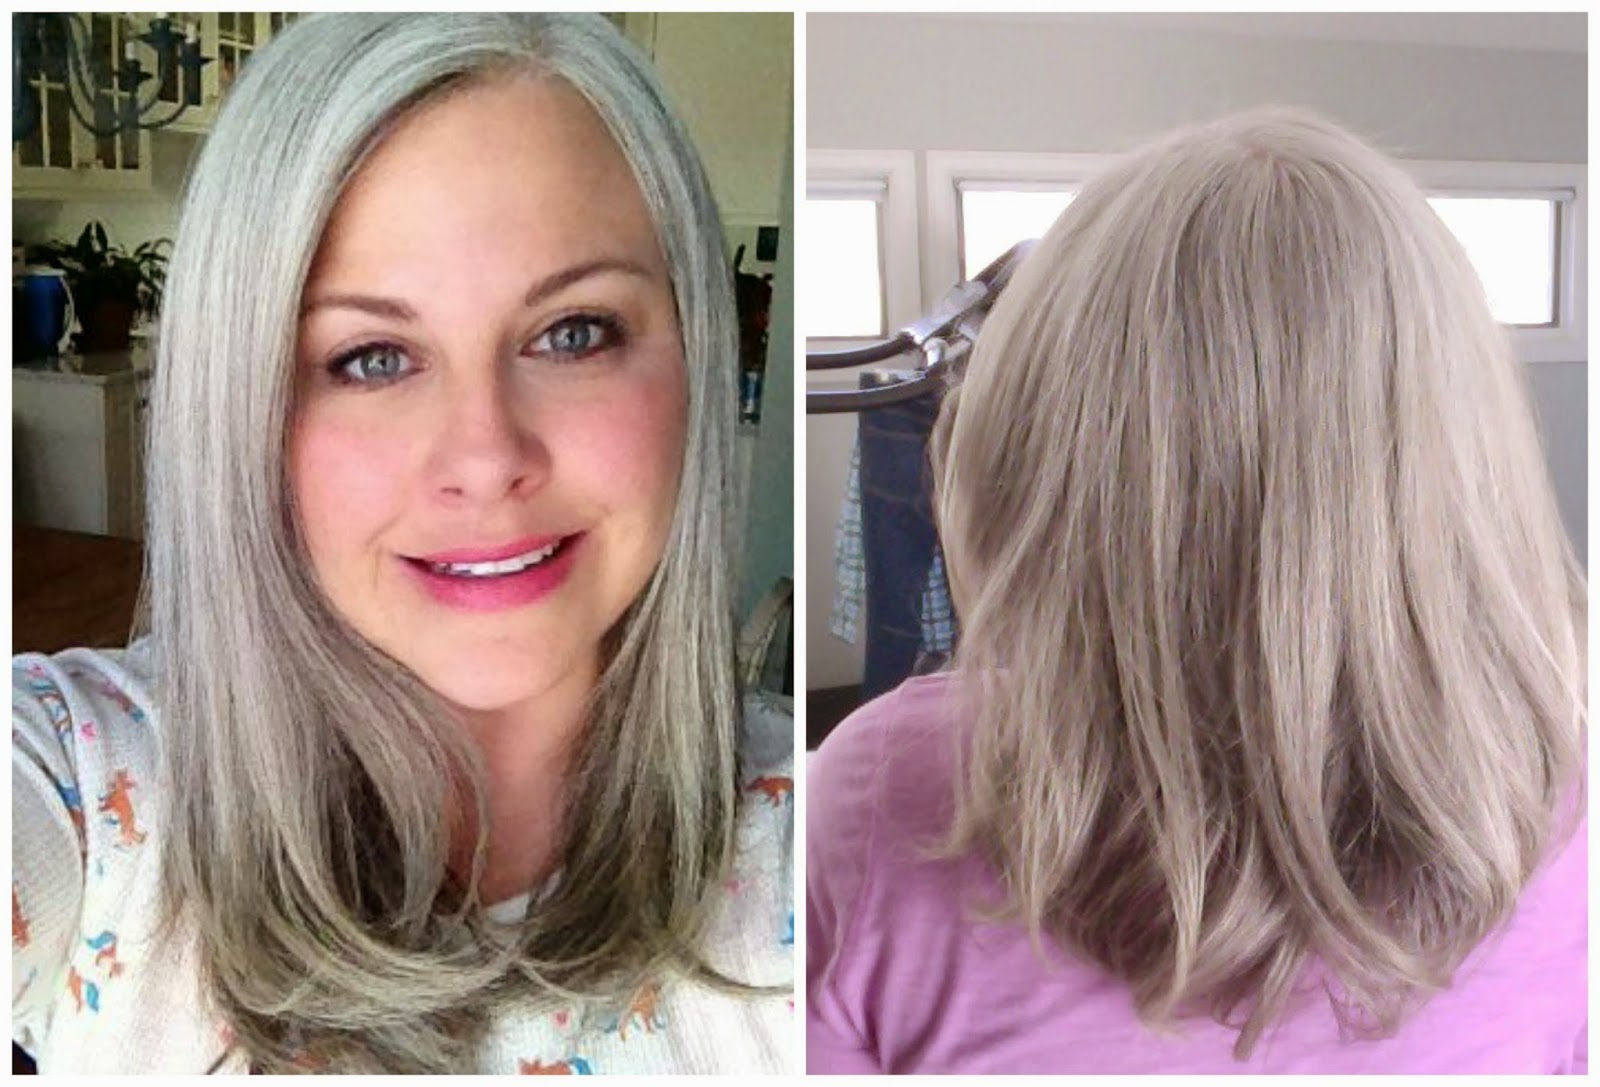 A Gray Hair Product Review! Make-Up and Other Fun, Girlie Things for ...